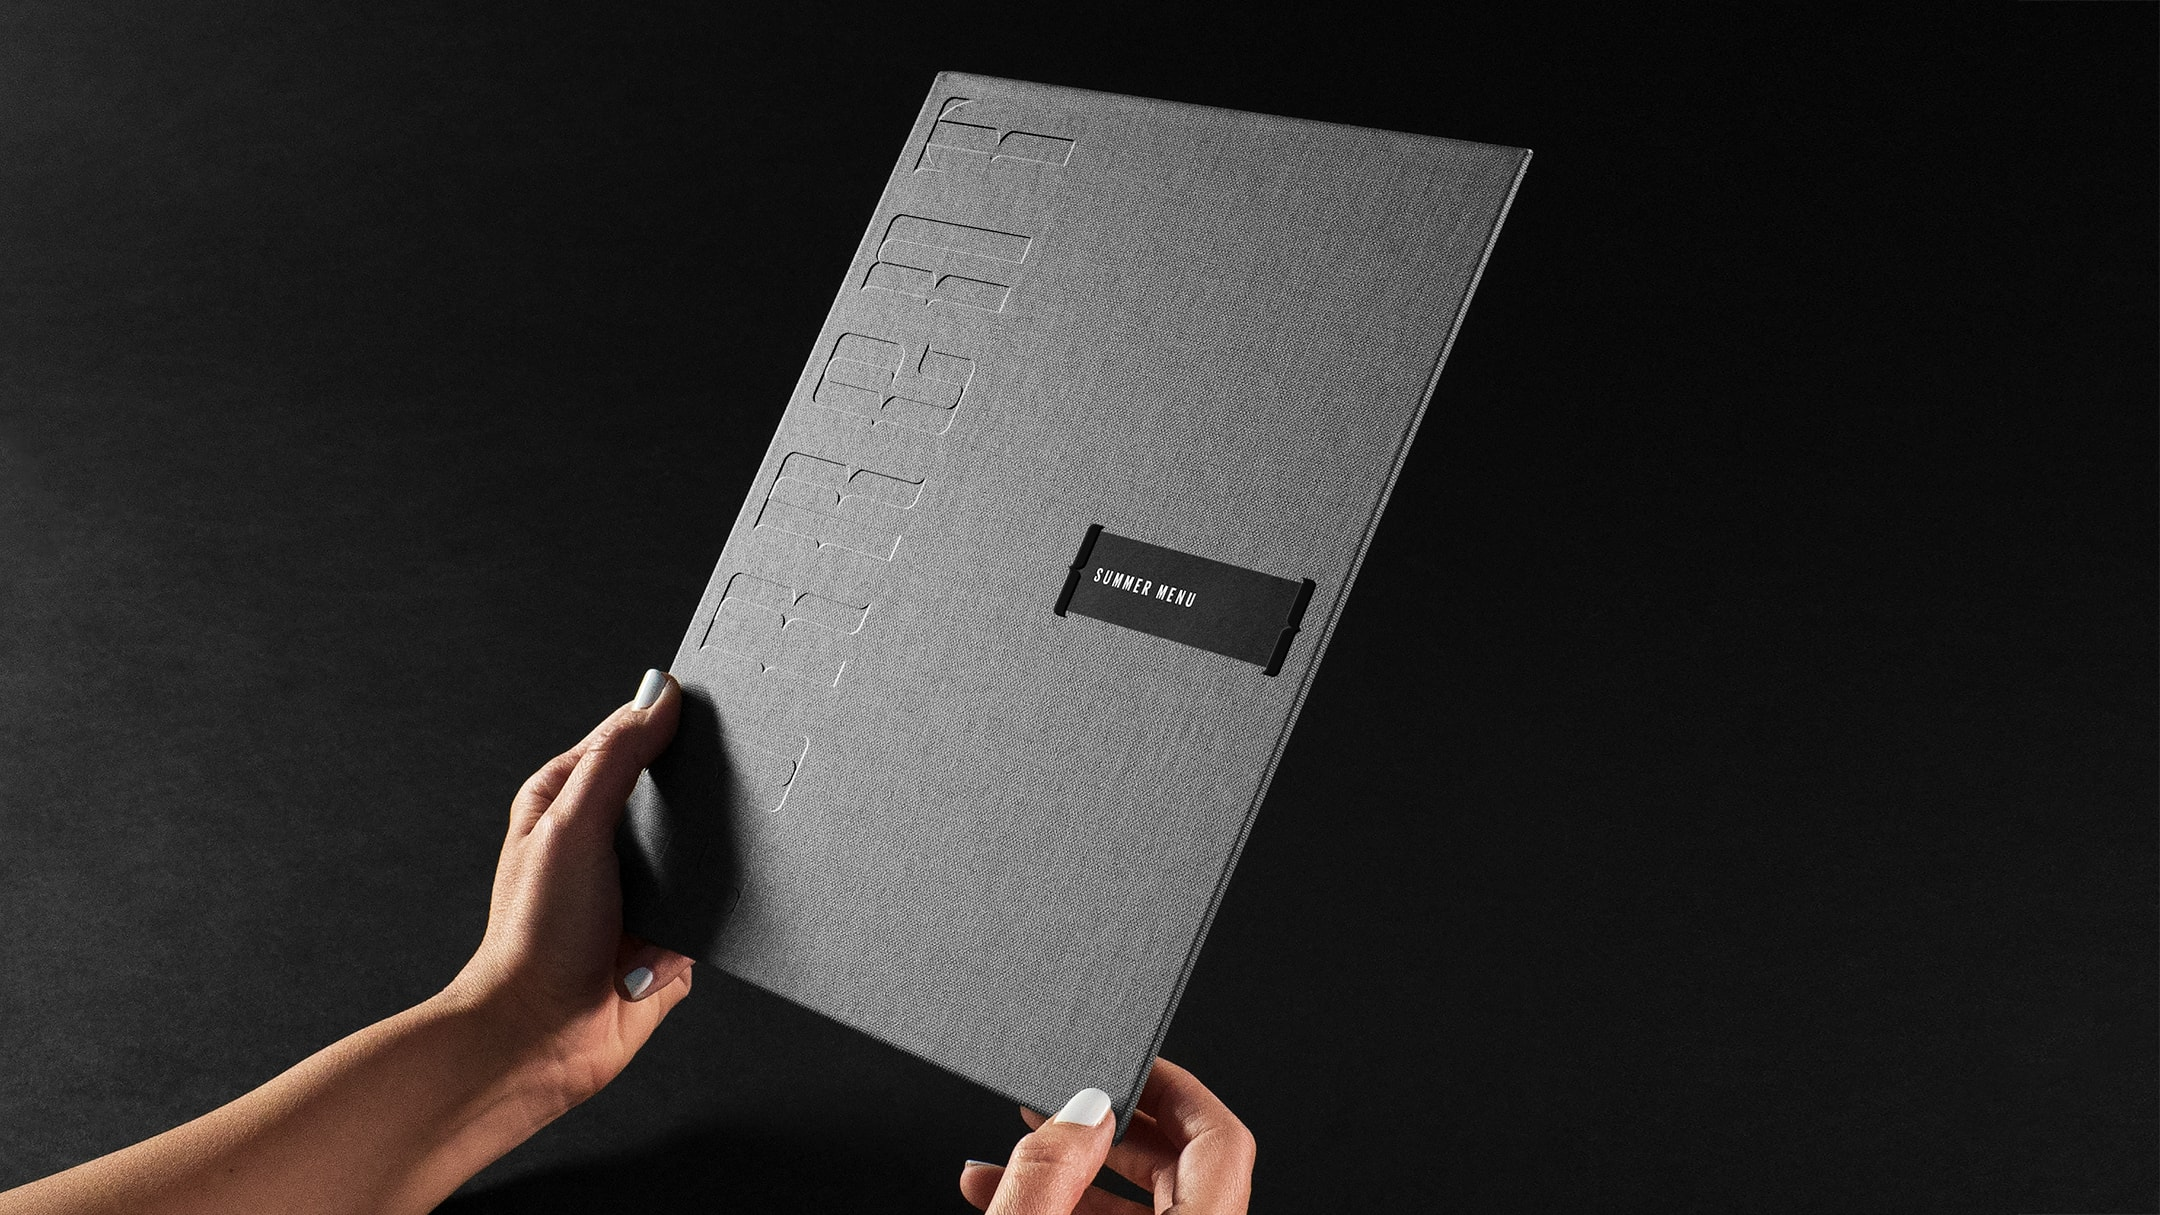 Current hotel branded menu, an example of how hospitality branding is more than logo design.